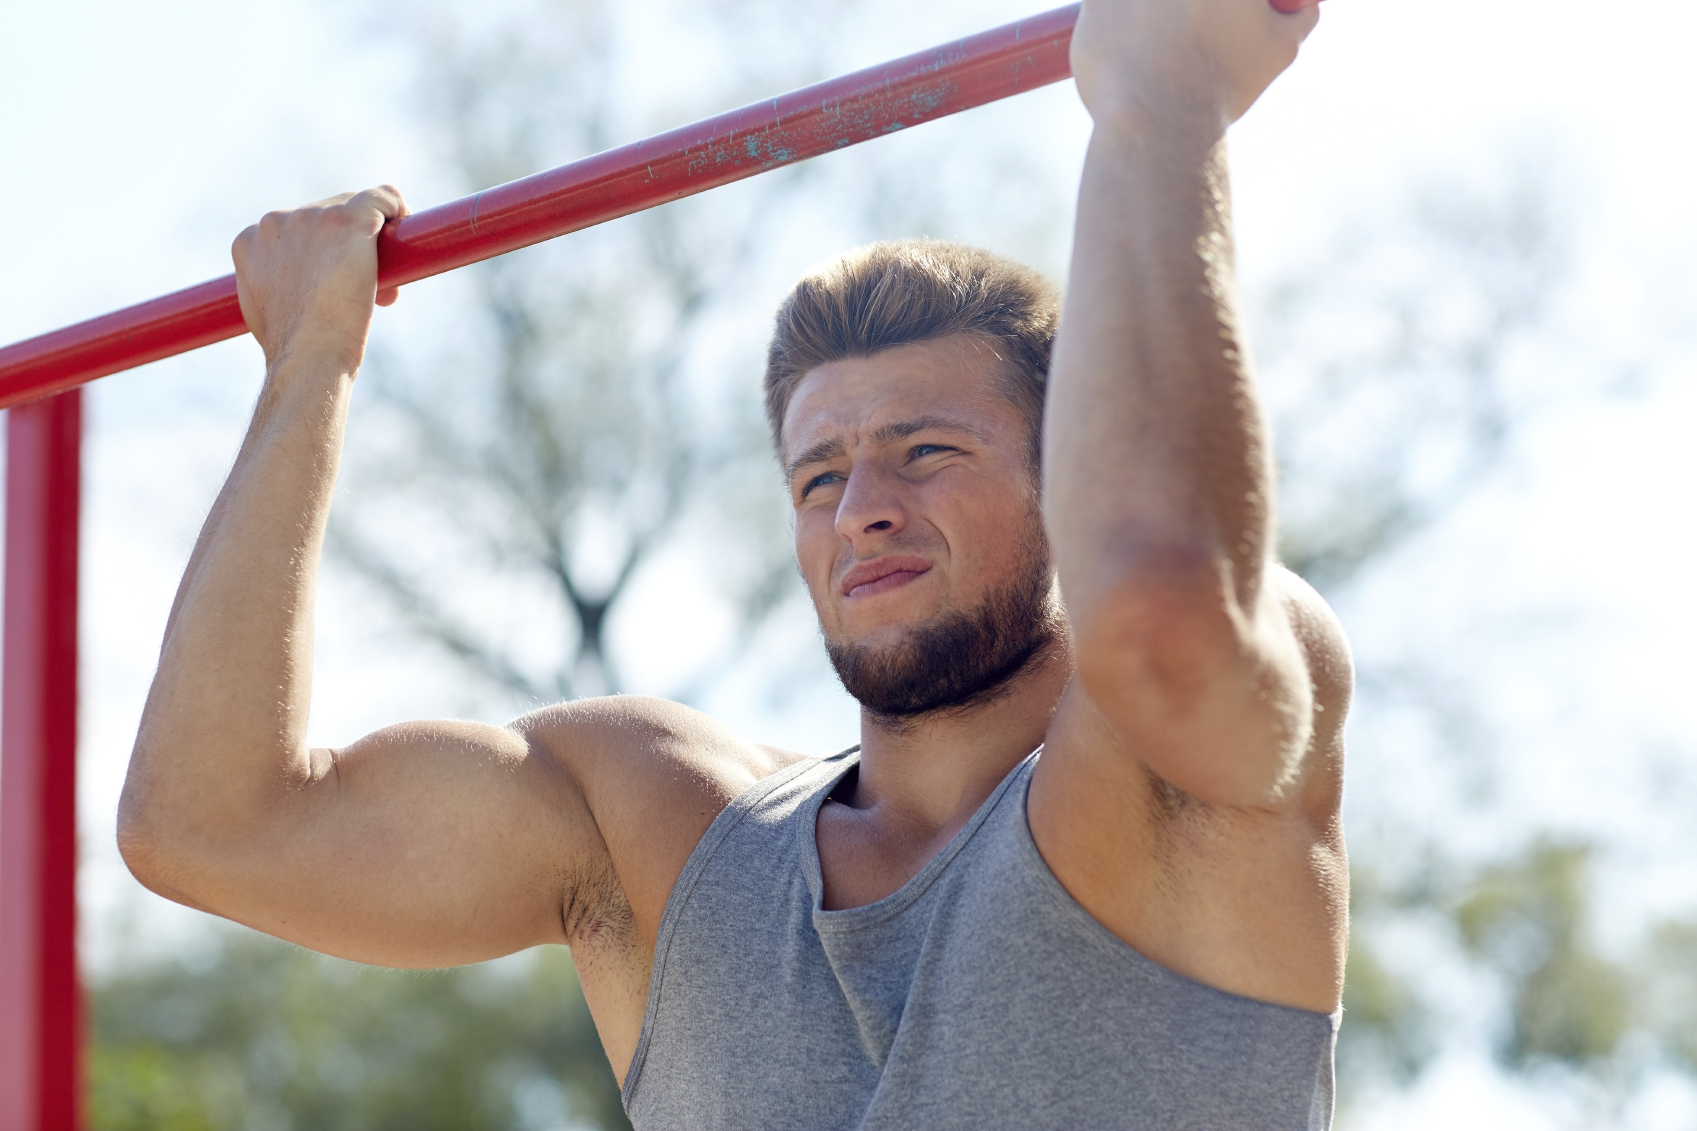 Biceps workouts with a pull up bar livestrong altavistaventures Choice Image